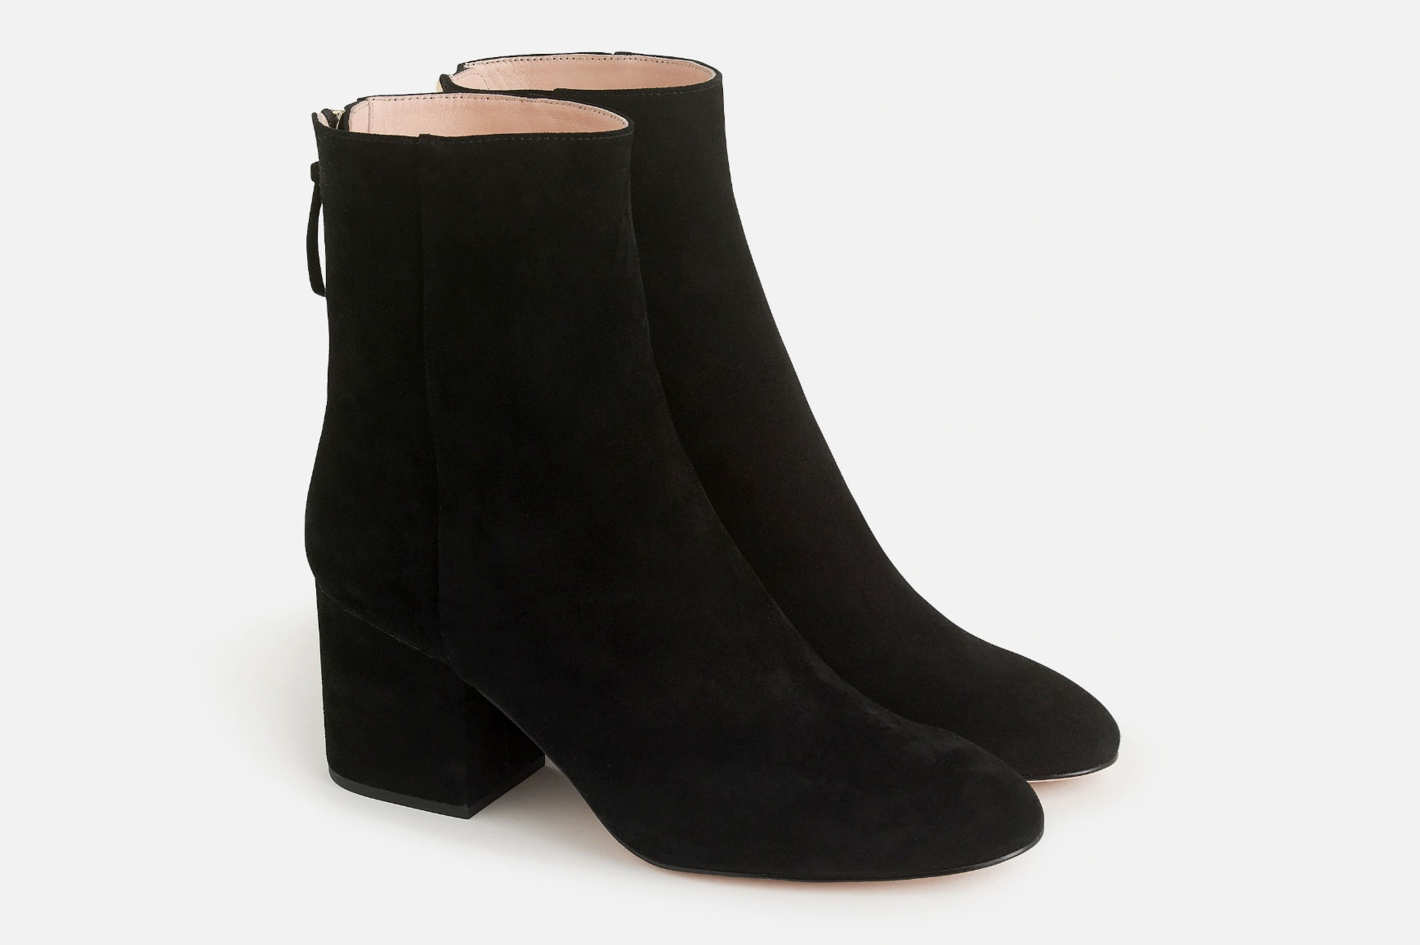 Sadie Ankle Boots in Suede